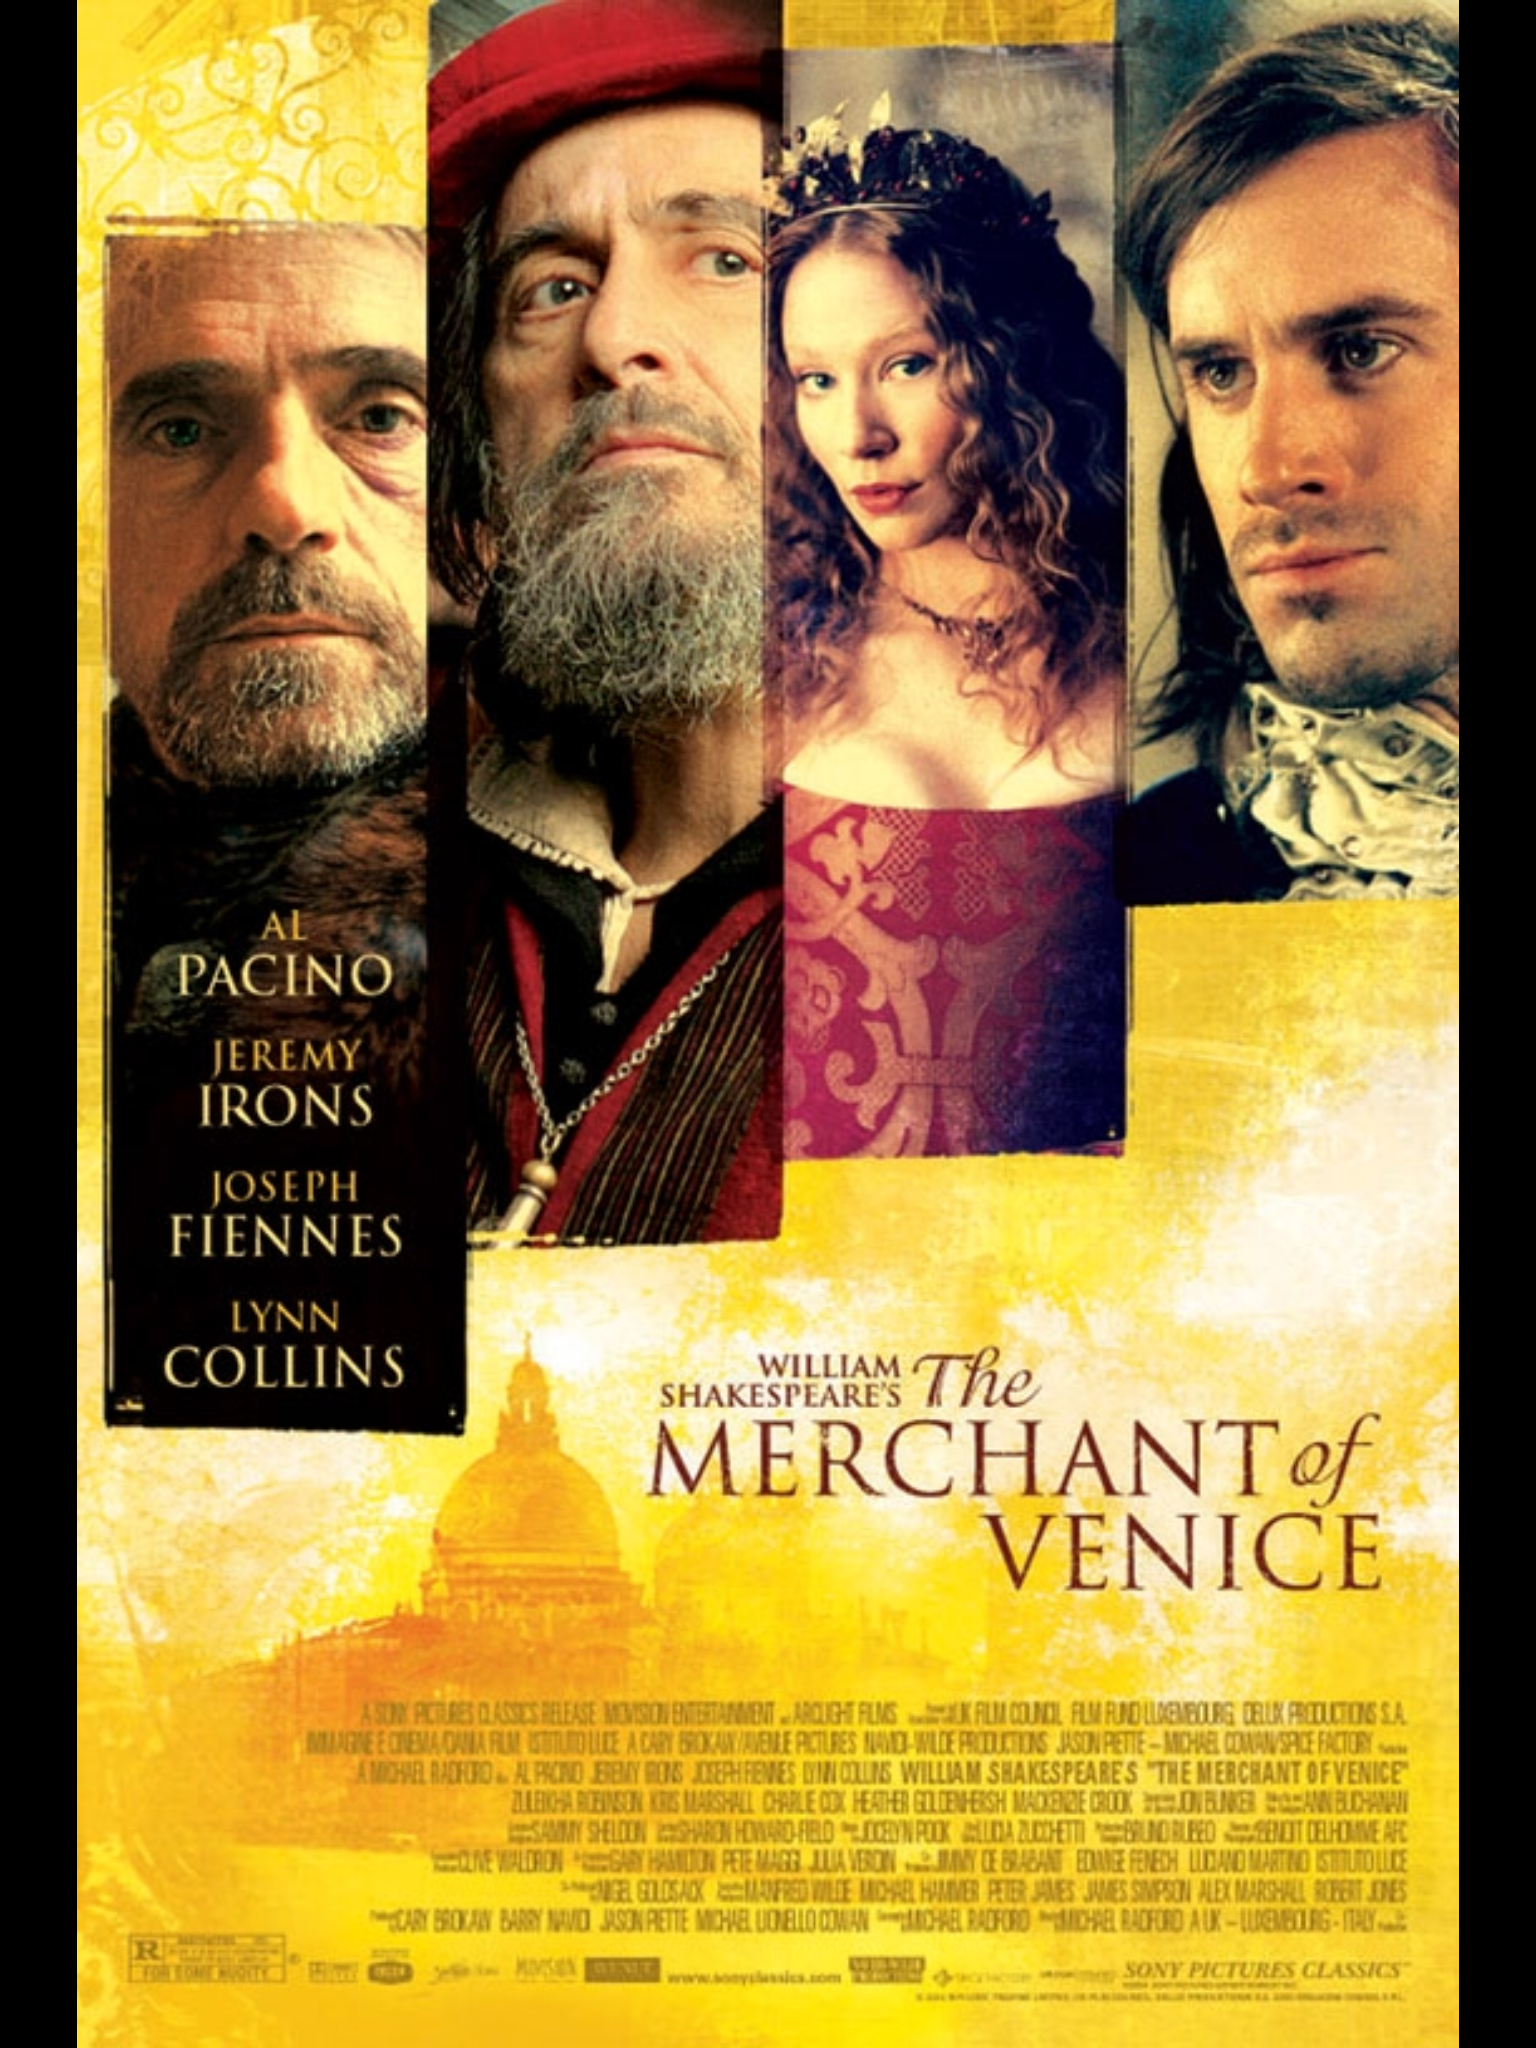 Pin By Mary Aaron On Classic Movie Stars The Merchant Of Venice Shakespeare Movies Venice